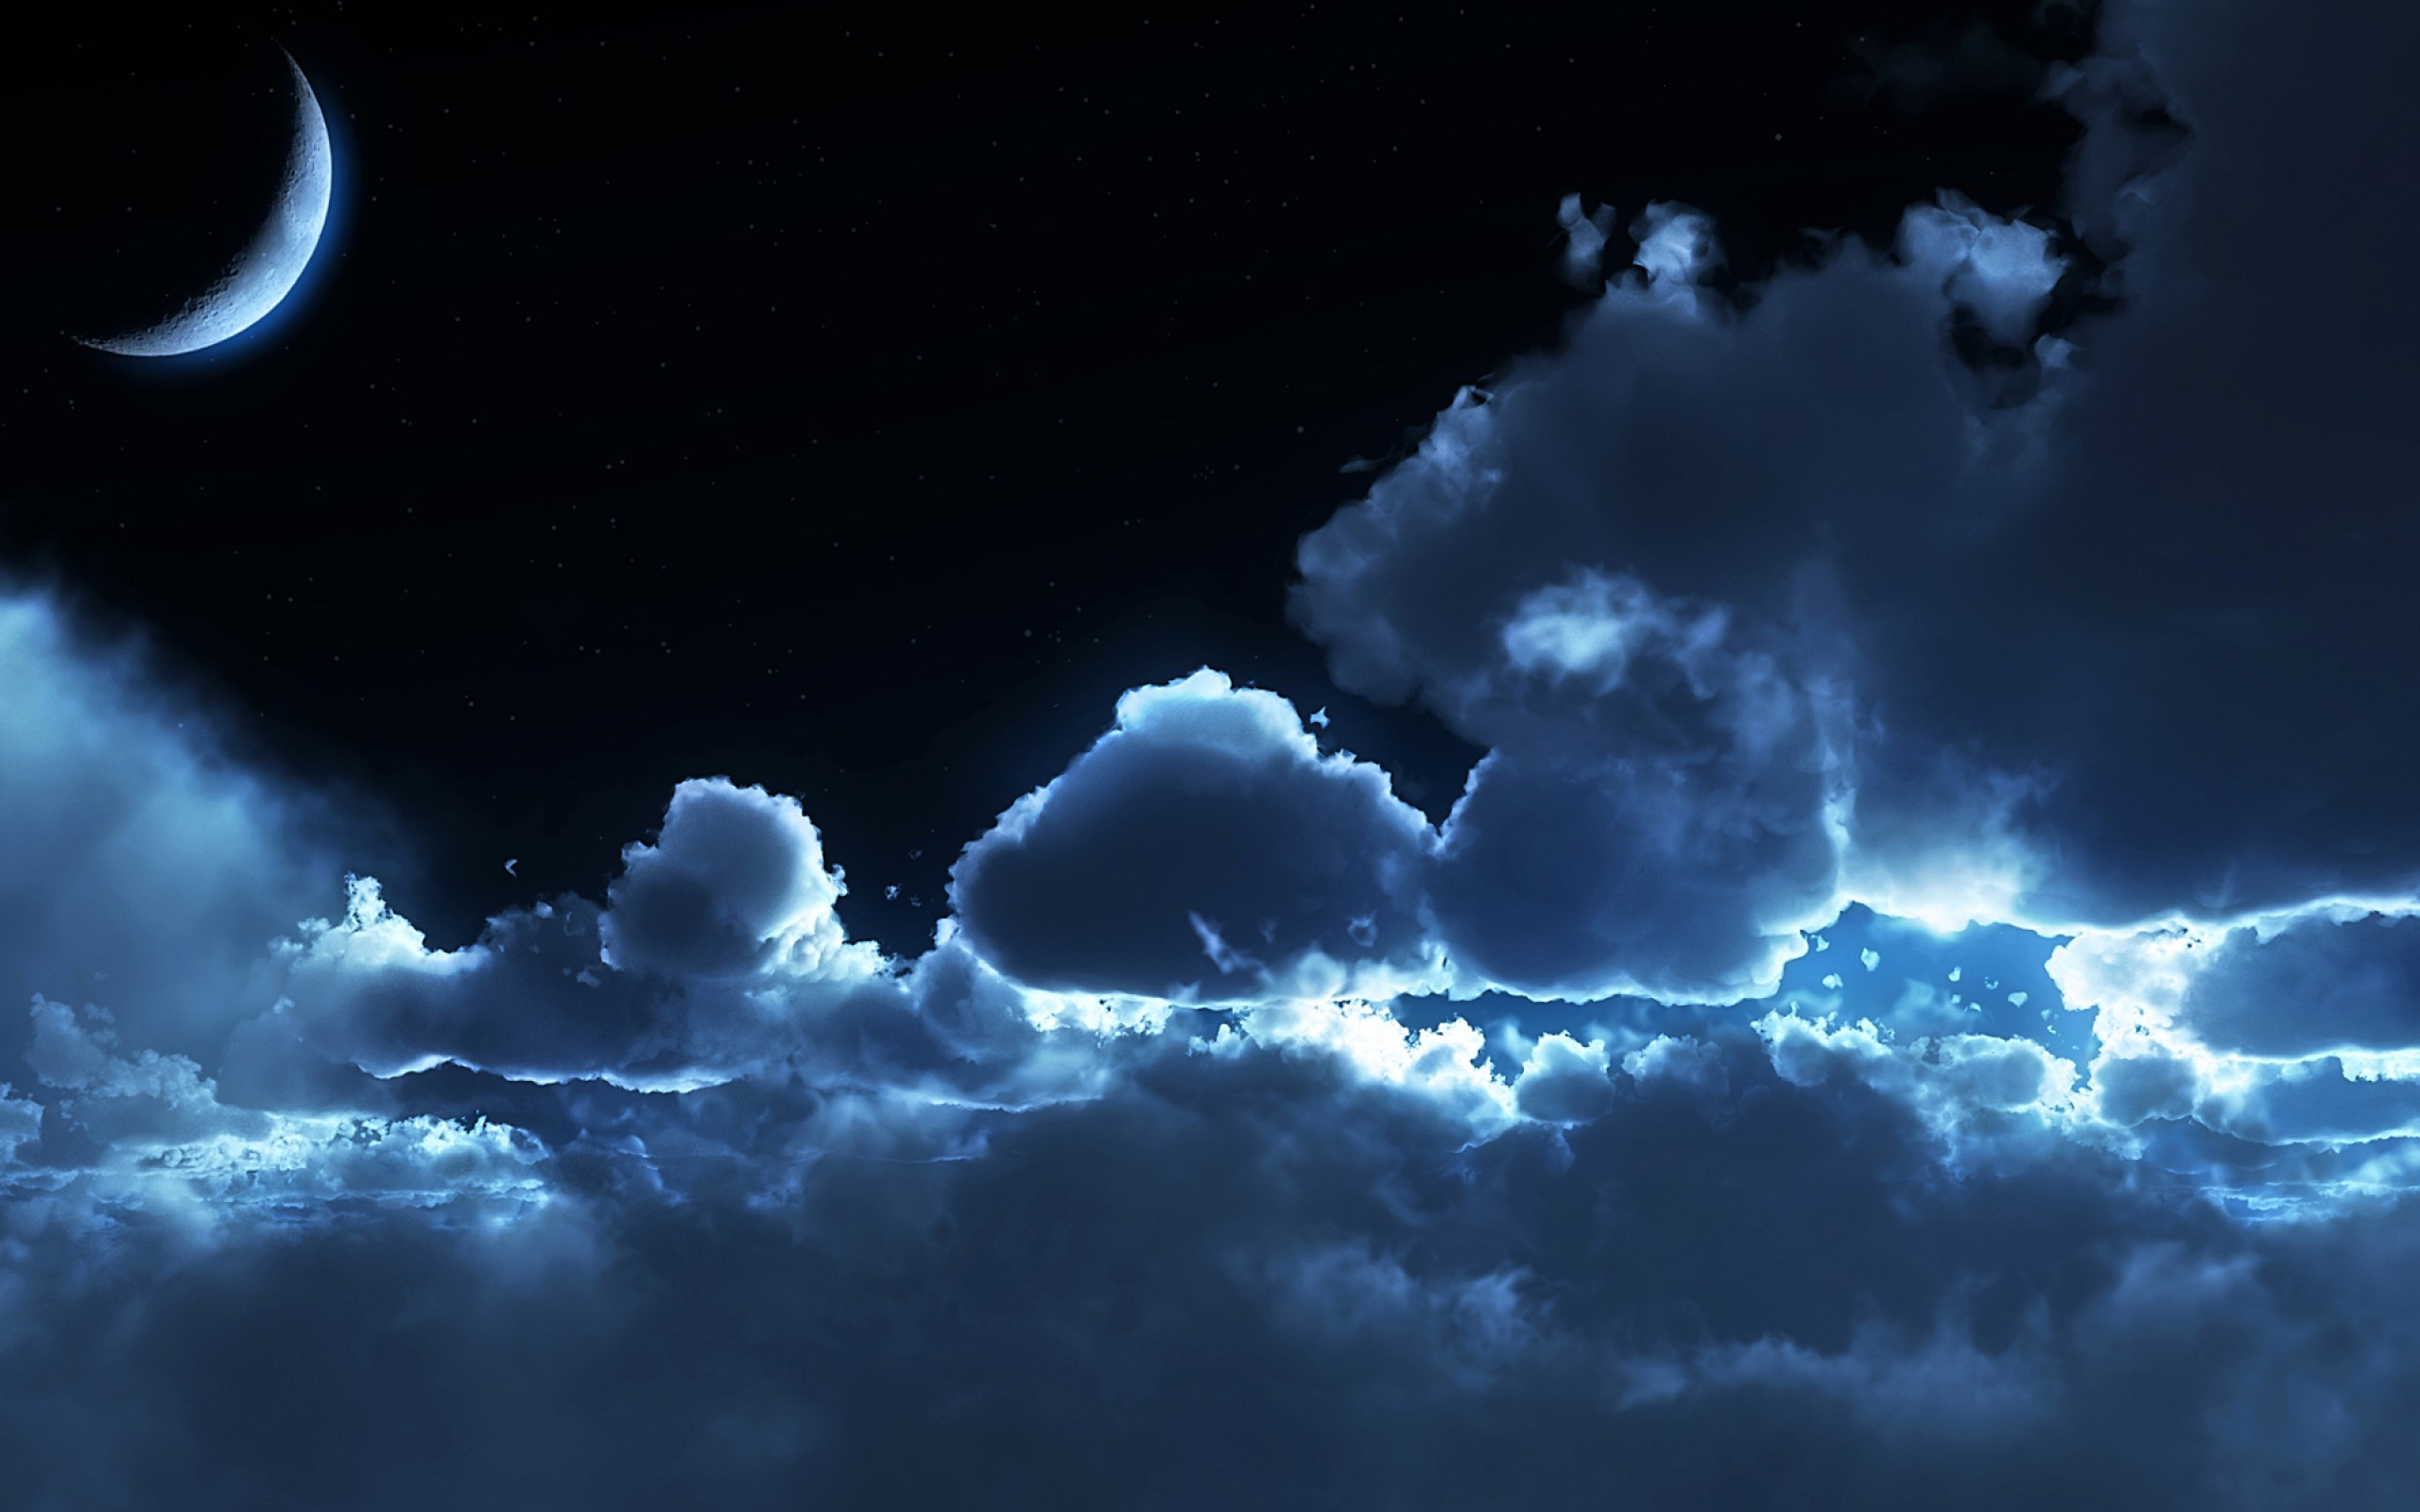 night sky wallpaper 11284